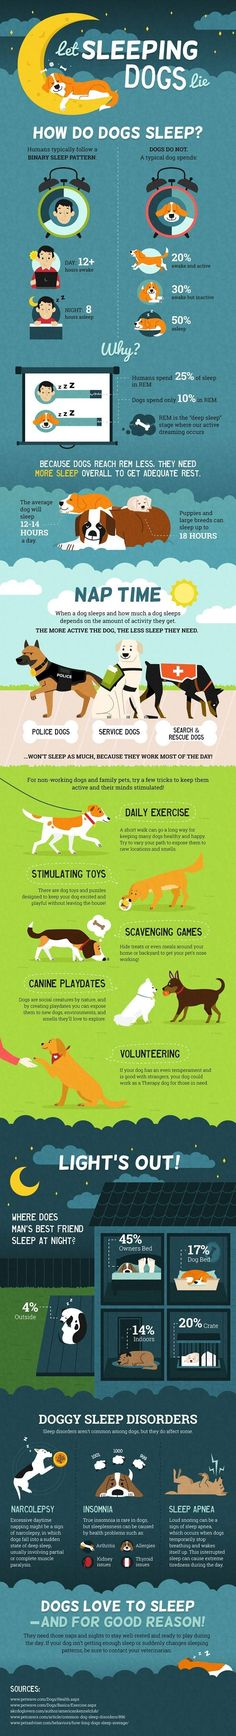 Dog Infographic: Let Sleeping Dogs Lie http://www.dailydogtag.com/lifestyle/let-sleeping-dogs-lie-but-how-much-sleep-do-dogs-need/?utm_content=buffer2d1b5&utm_medium=social&utm_source=pinterest.com&utm_campaign=buffer#_a5y_p=4157036